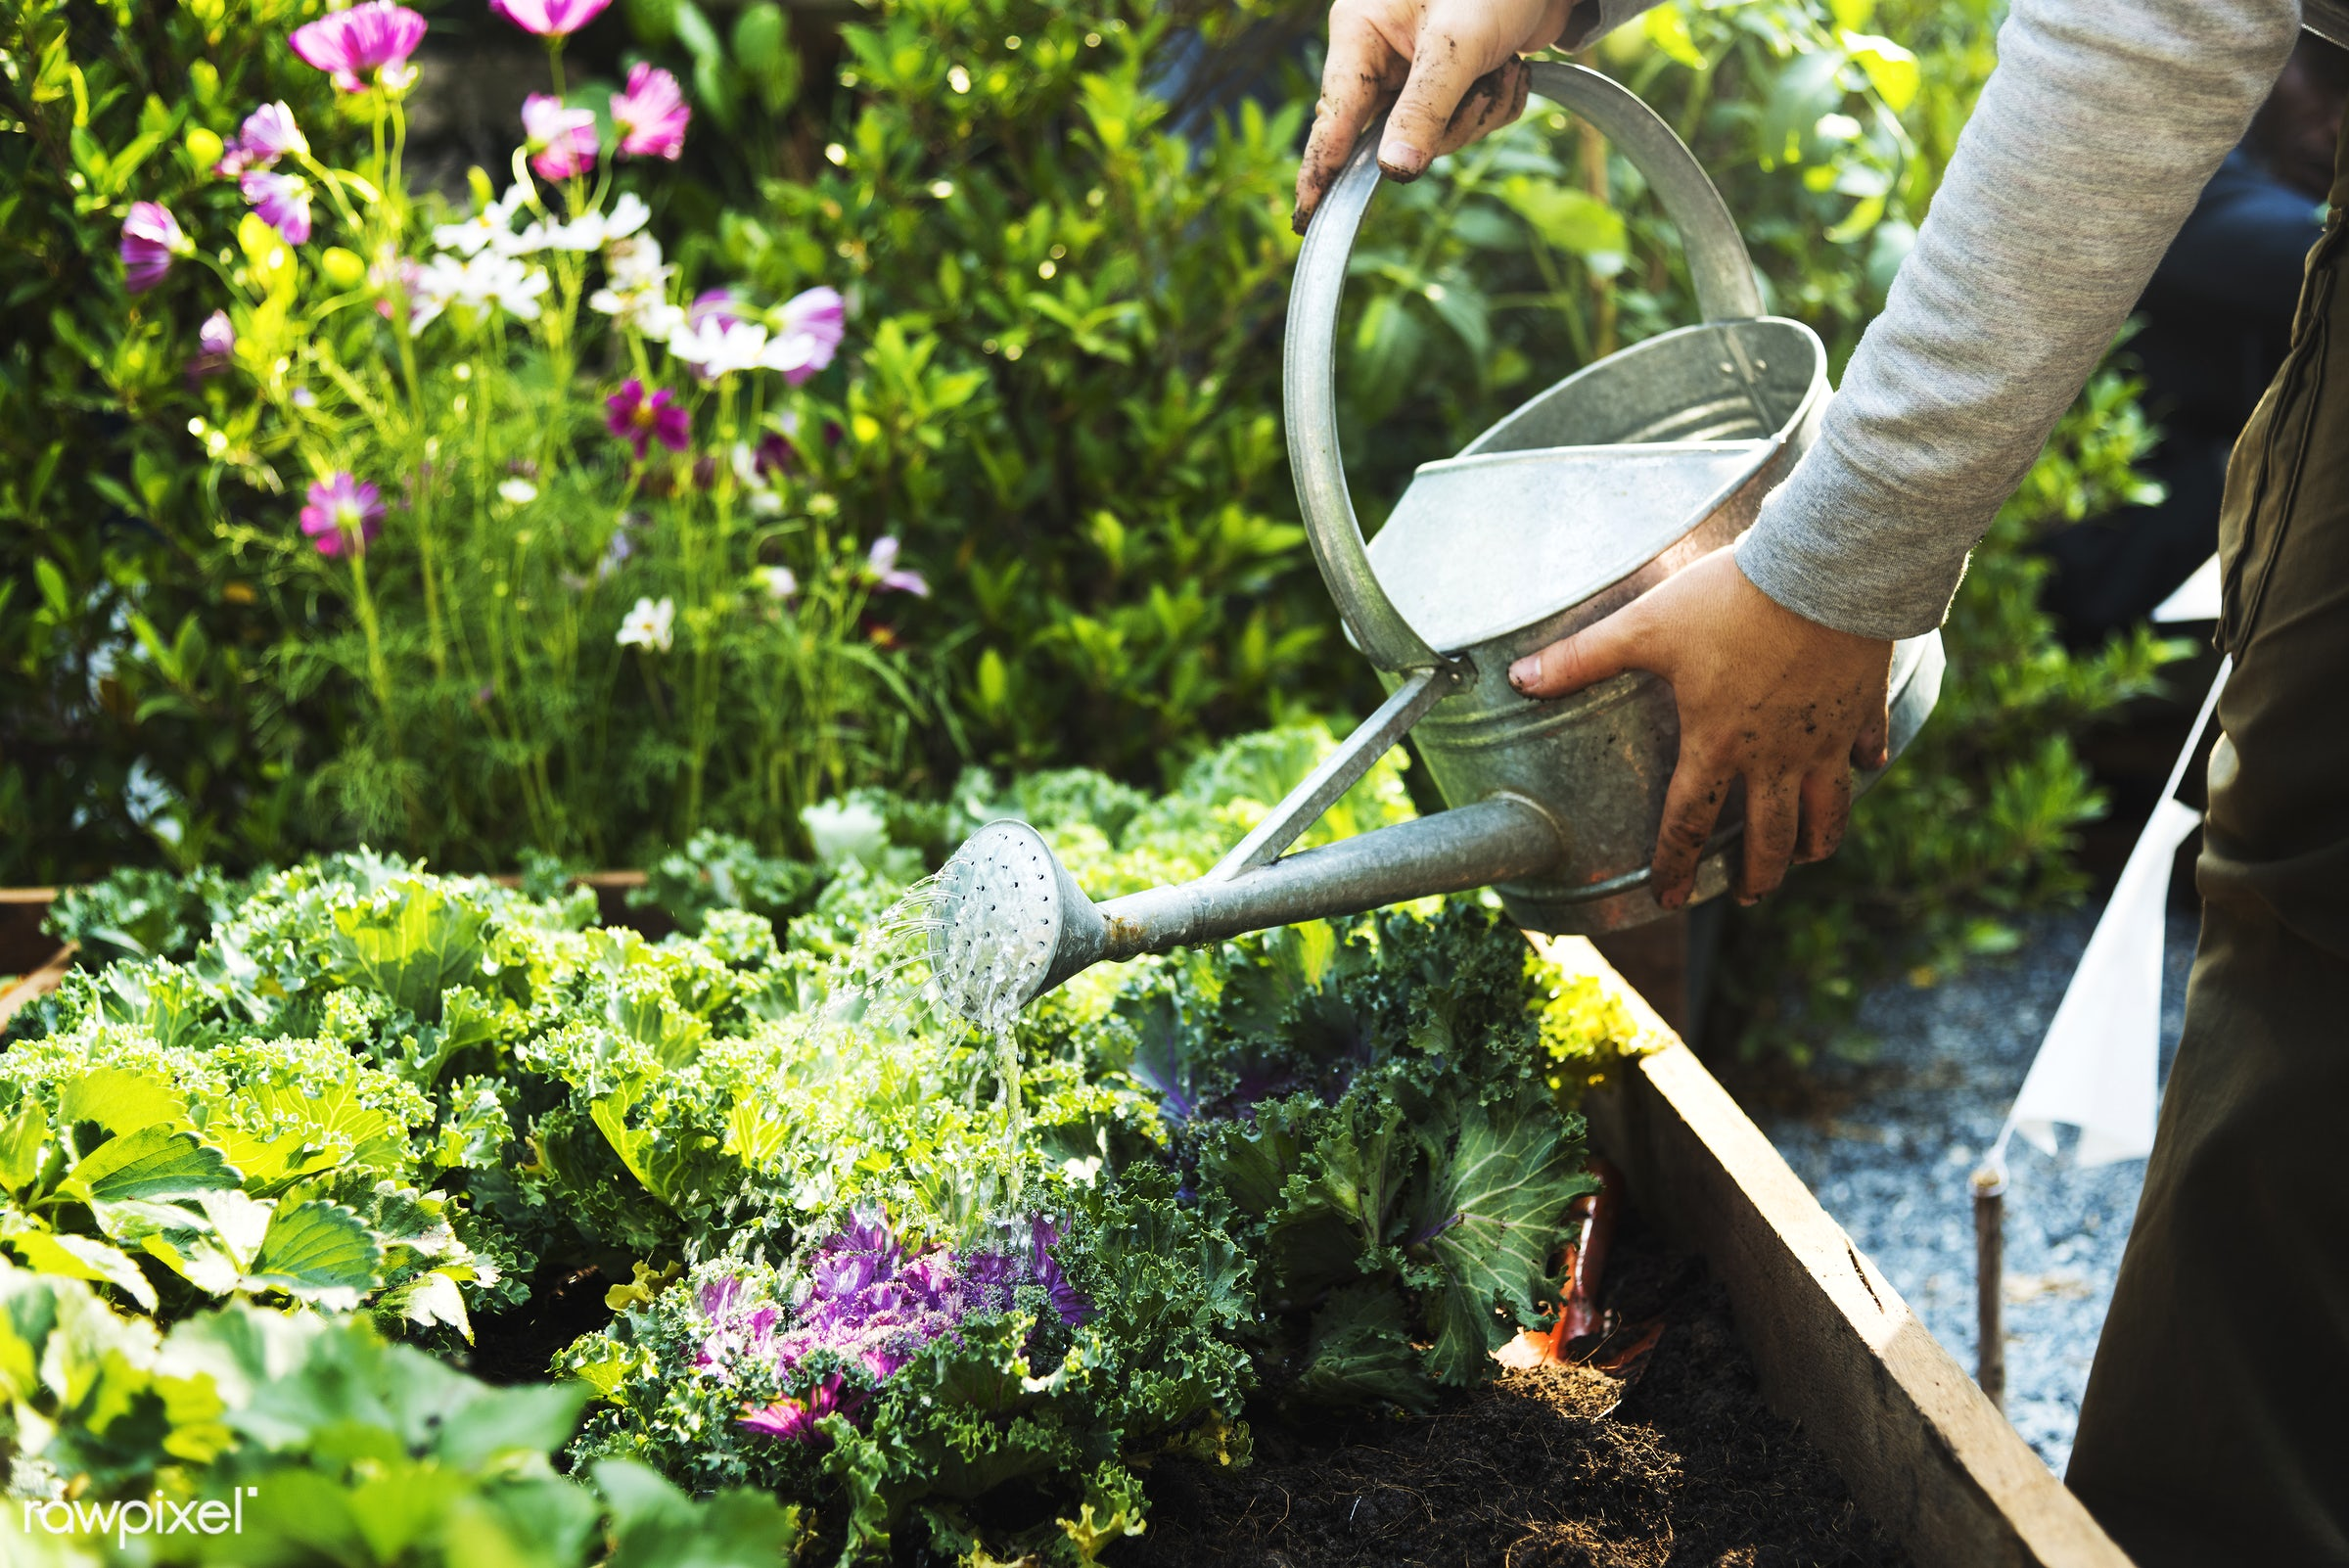 plant, salad, person, plants, leaves, spring, people, farm, hand, tree, farmer, hands, fresh, tree bed, dig, dirt, flowers,...